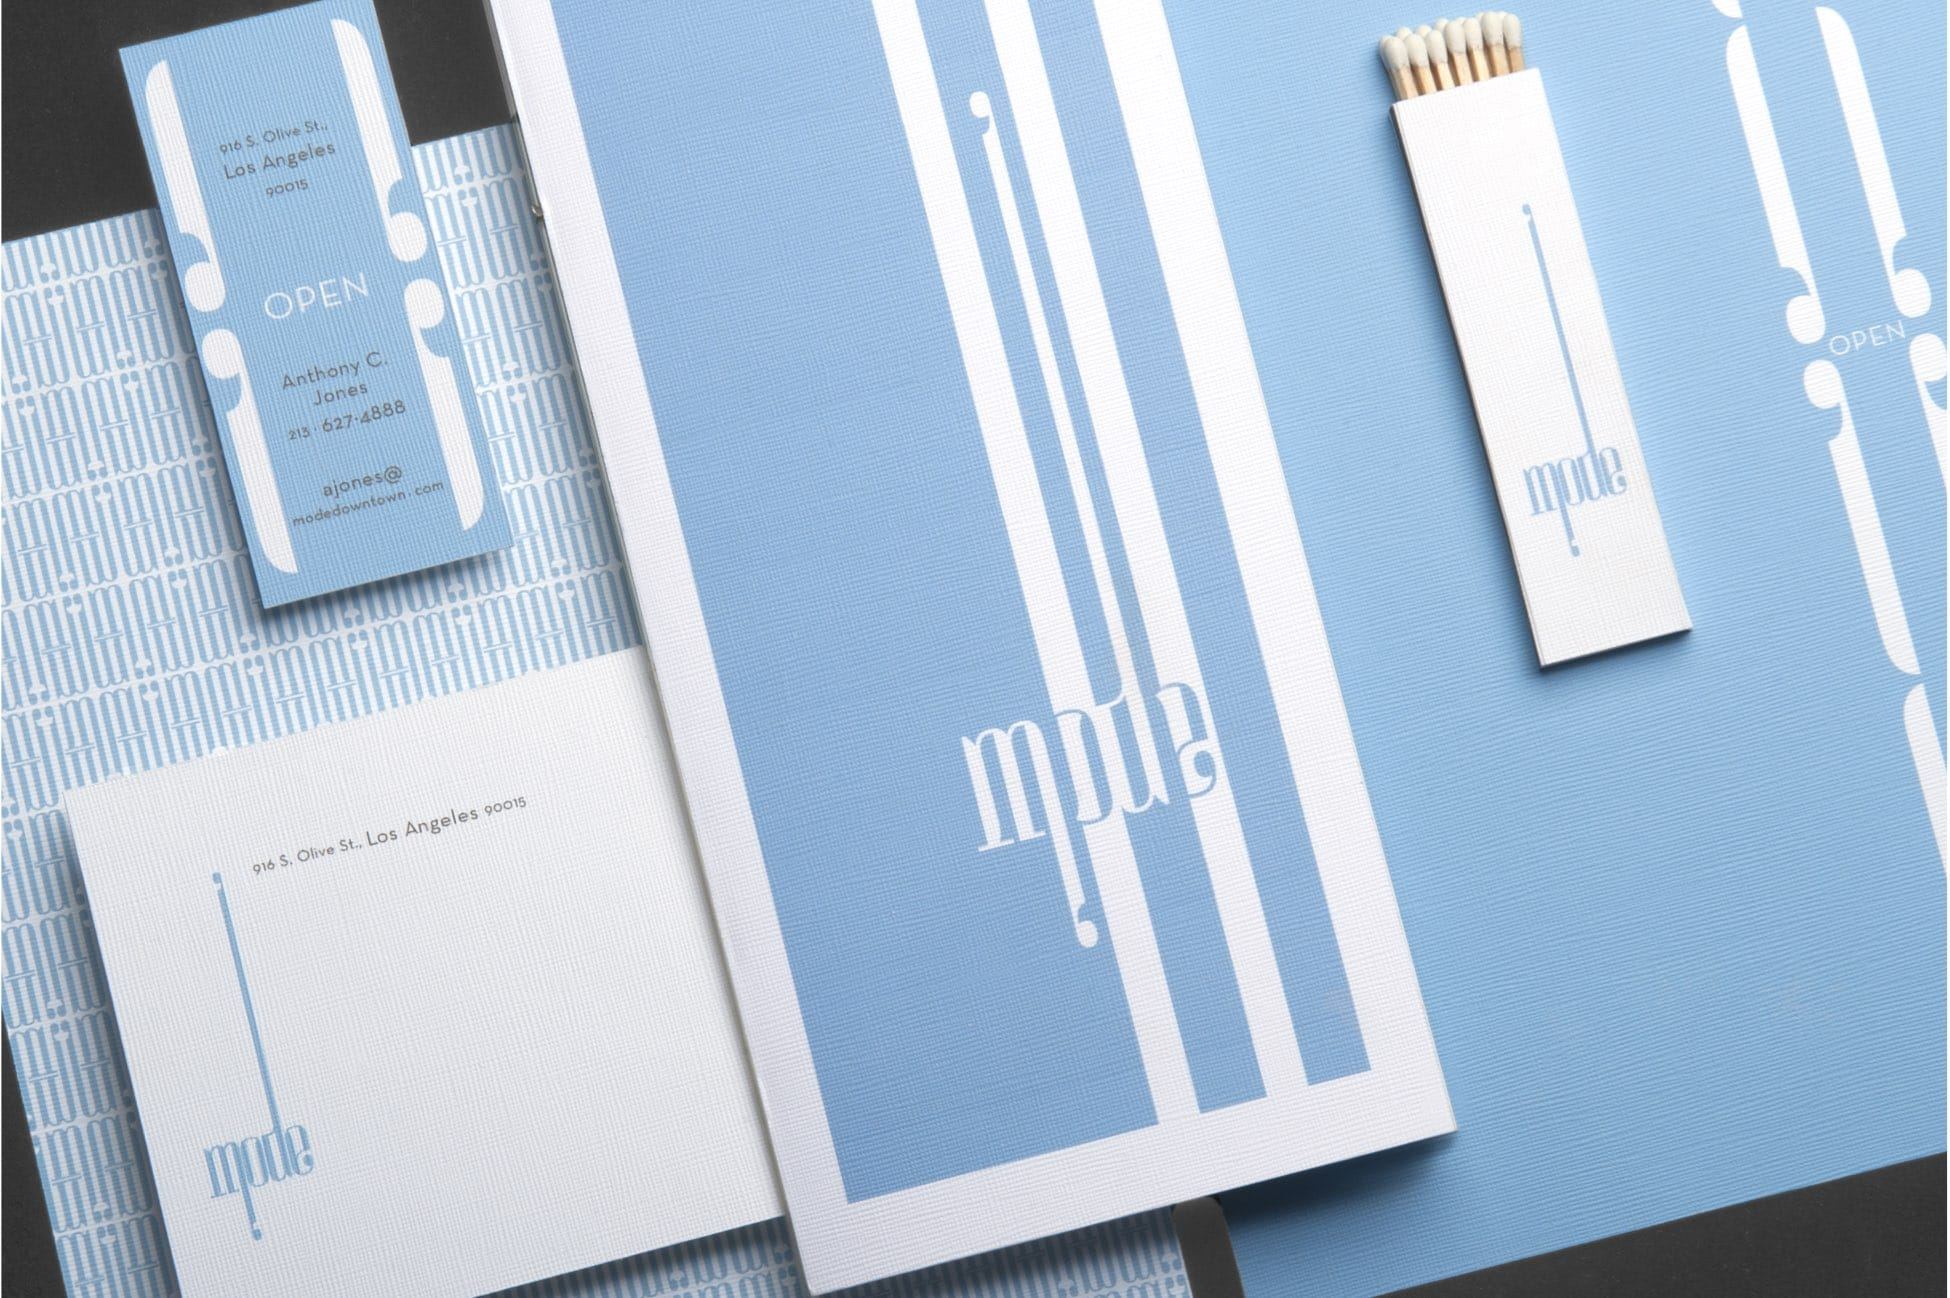 brand identity package with a business card, menu card, matchbox, and stationery